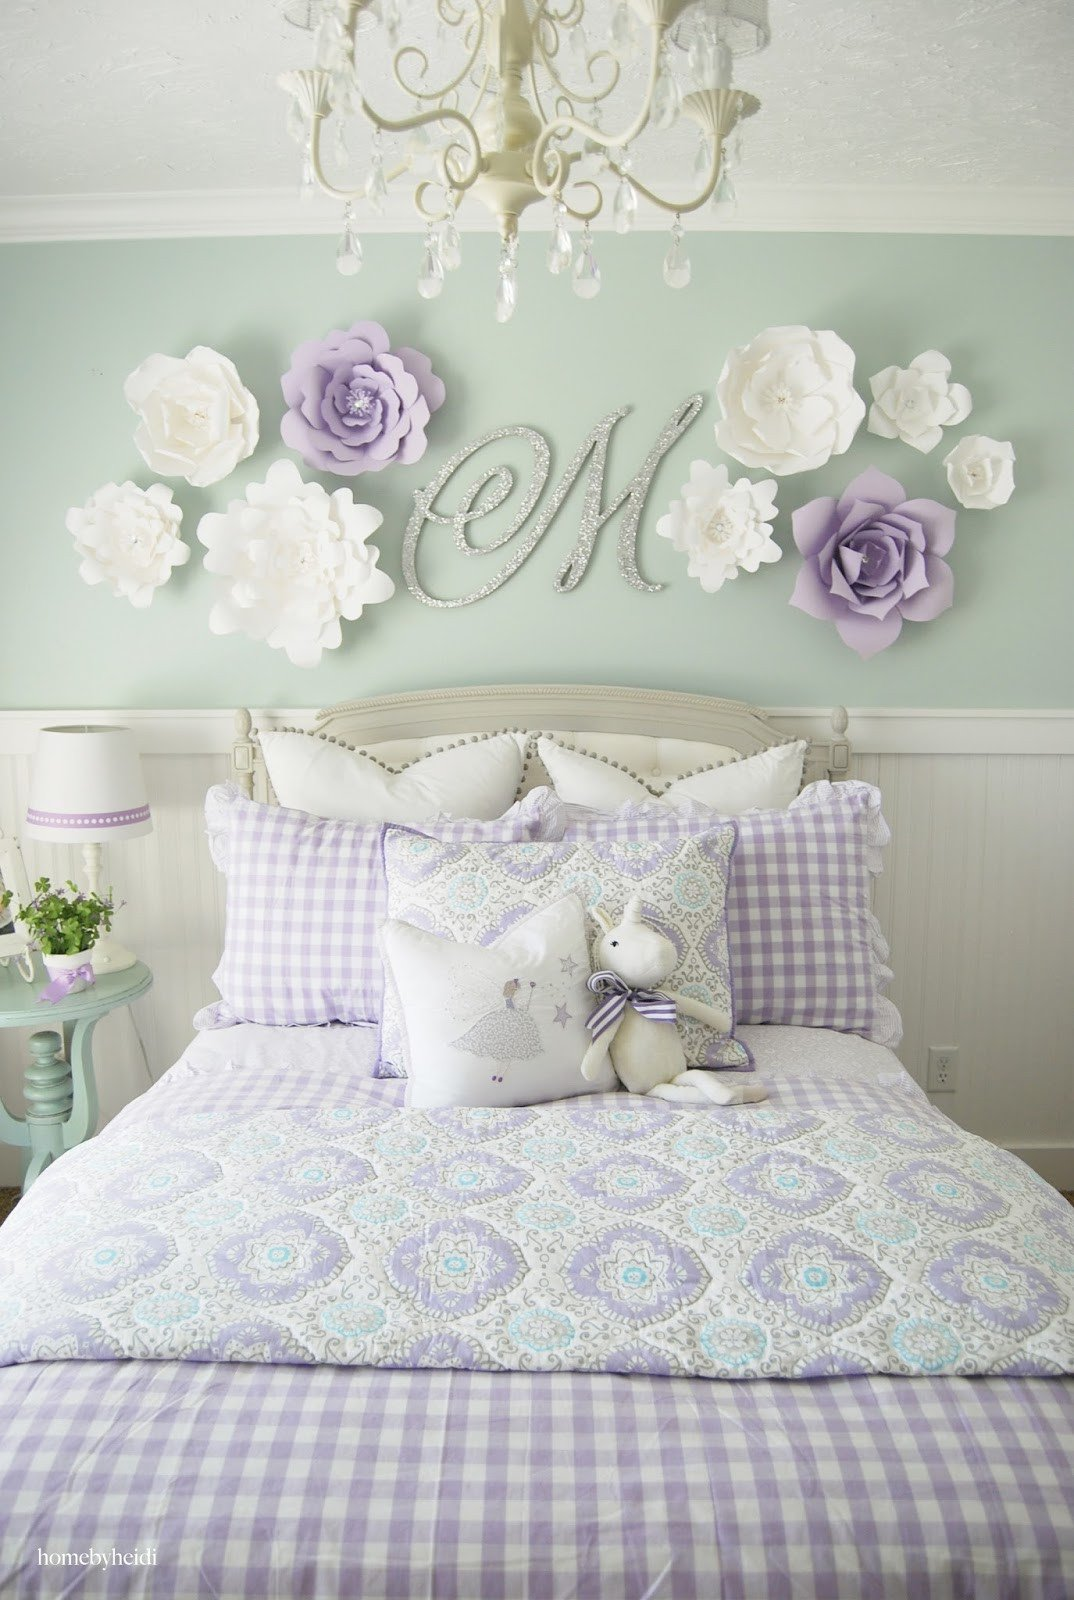 Wall Decor for Girls Room Fresh Home by Heidi Purple & Turquoise Little Girls Room